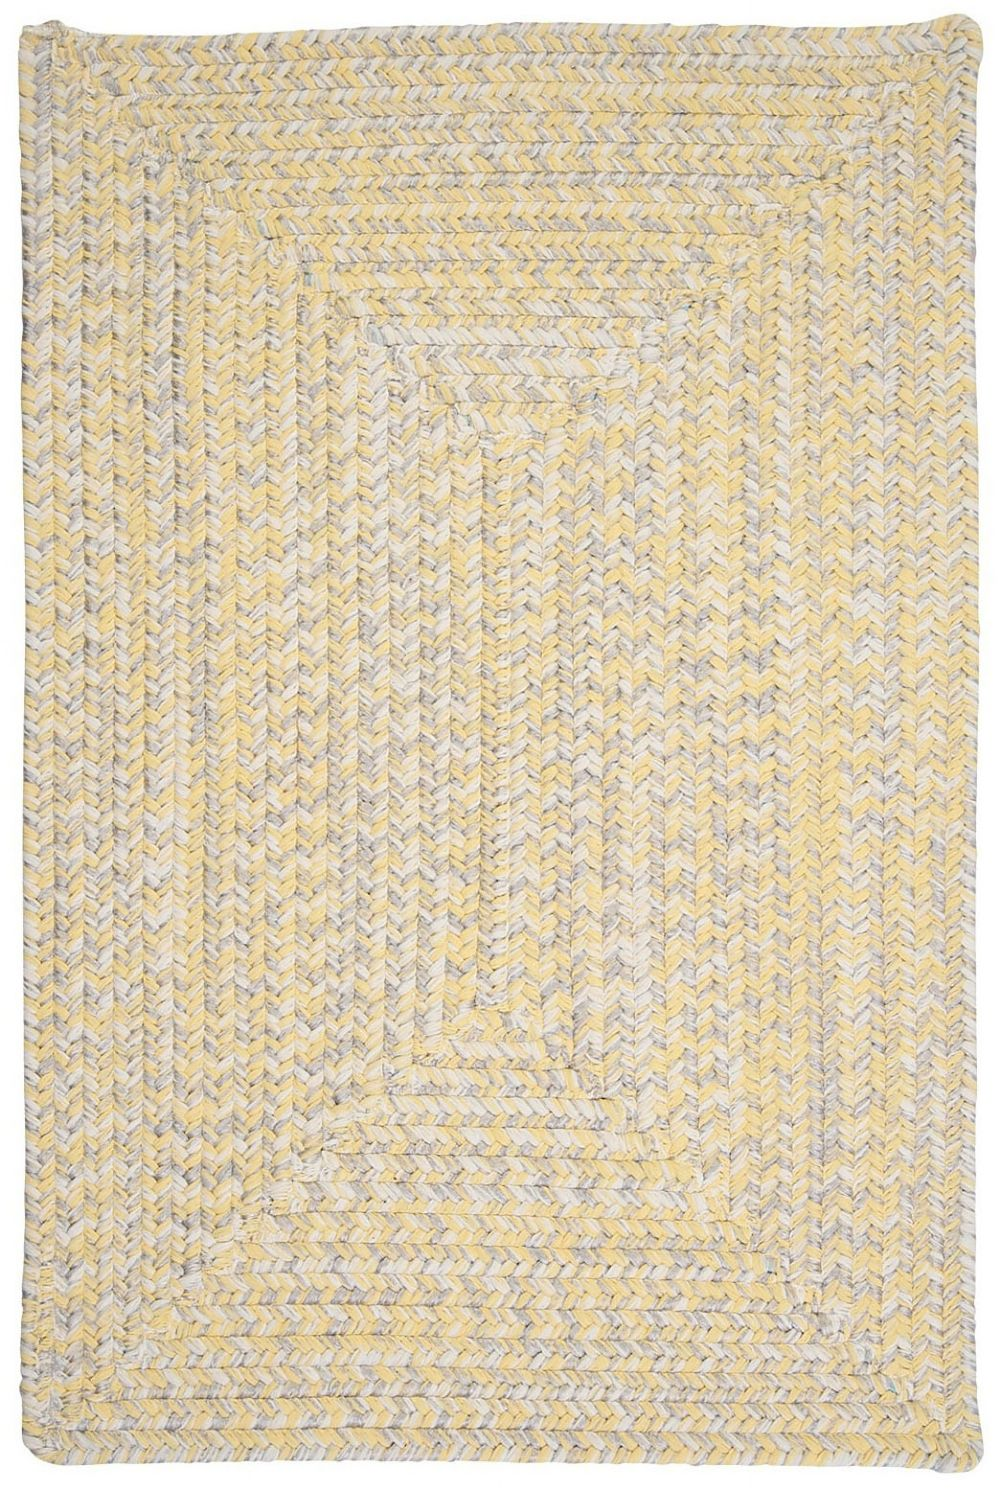 colonial mills catalina braided area rug collection